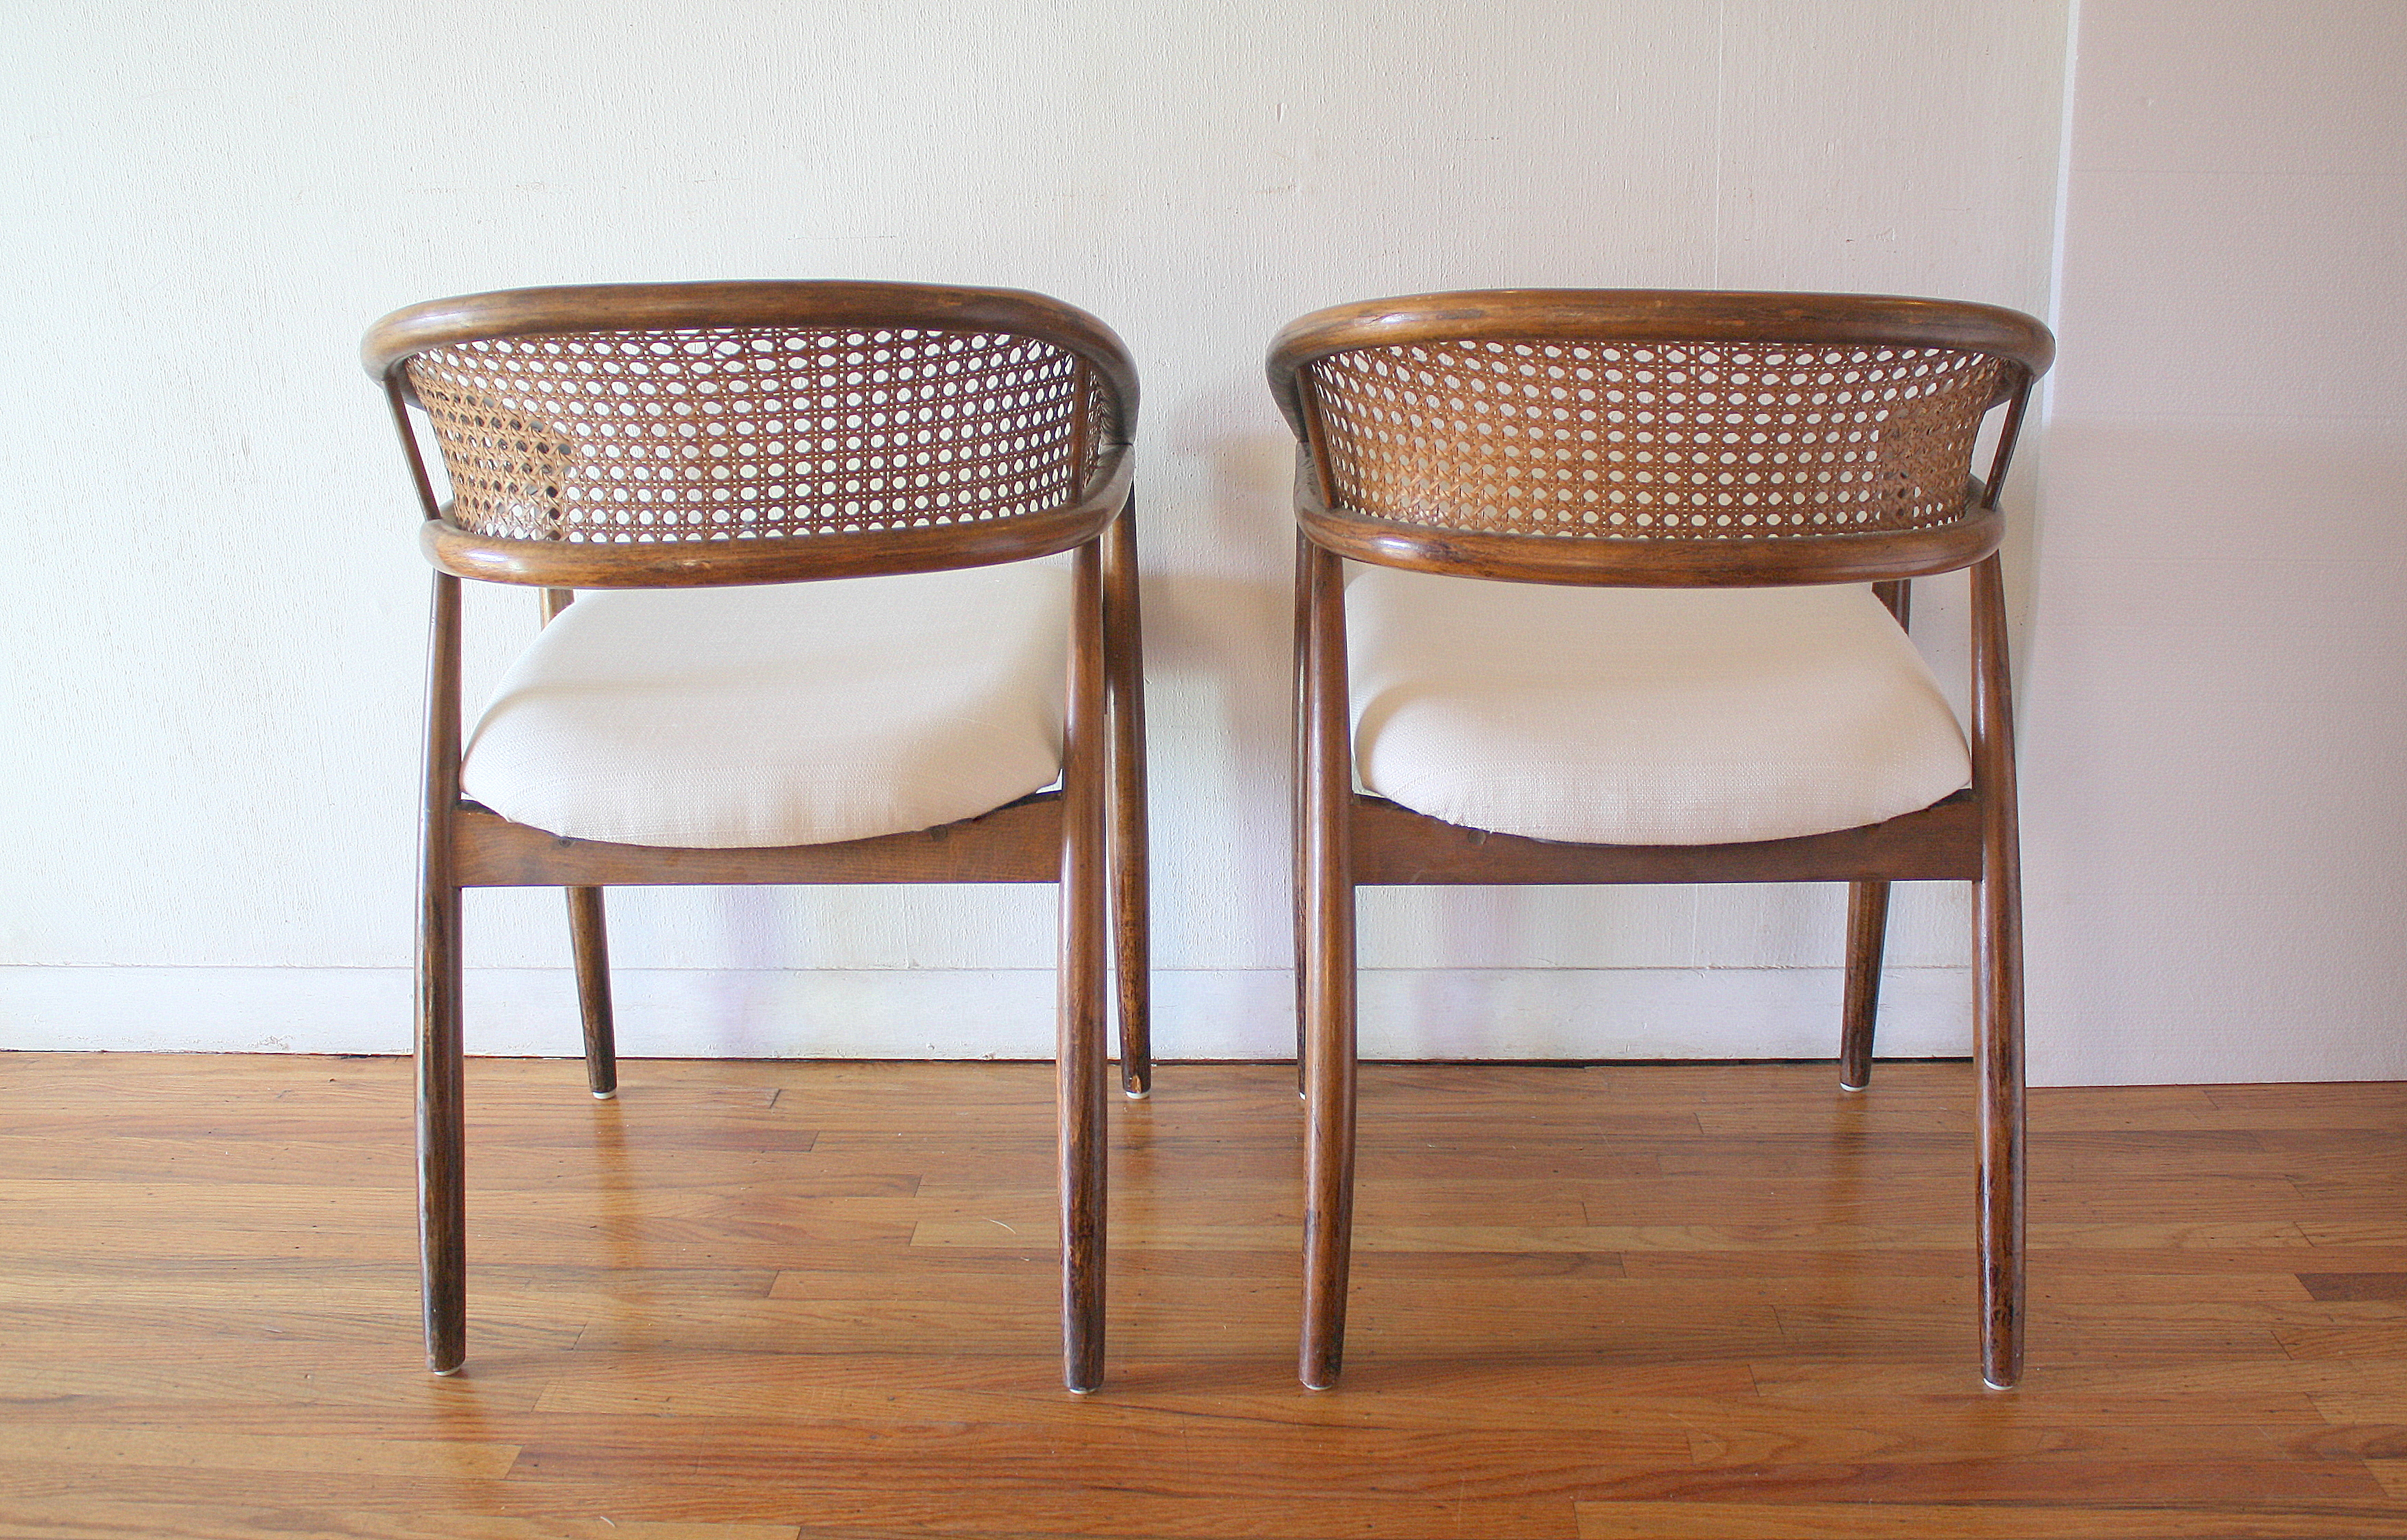 eames arm chair diy folding adirondack plans mid century modern pair of cane rattan back chairs | picked vintage